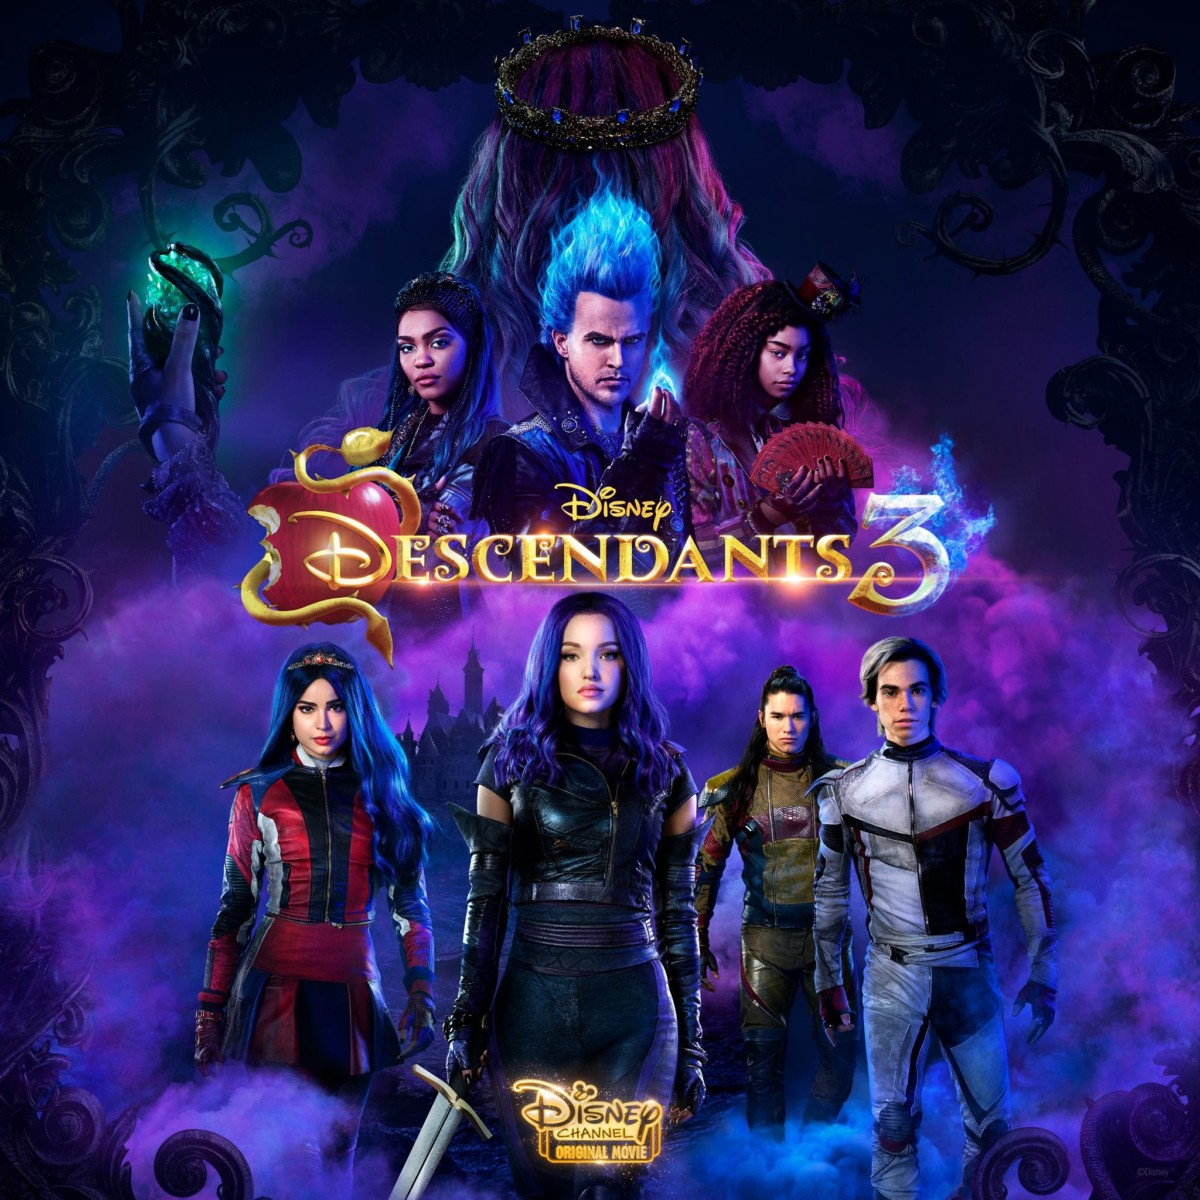 Our Chat With Booboo Stewart from Disney Descendants #descendants3 2